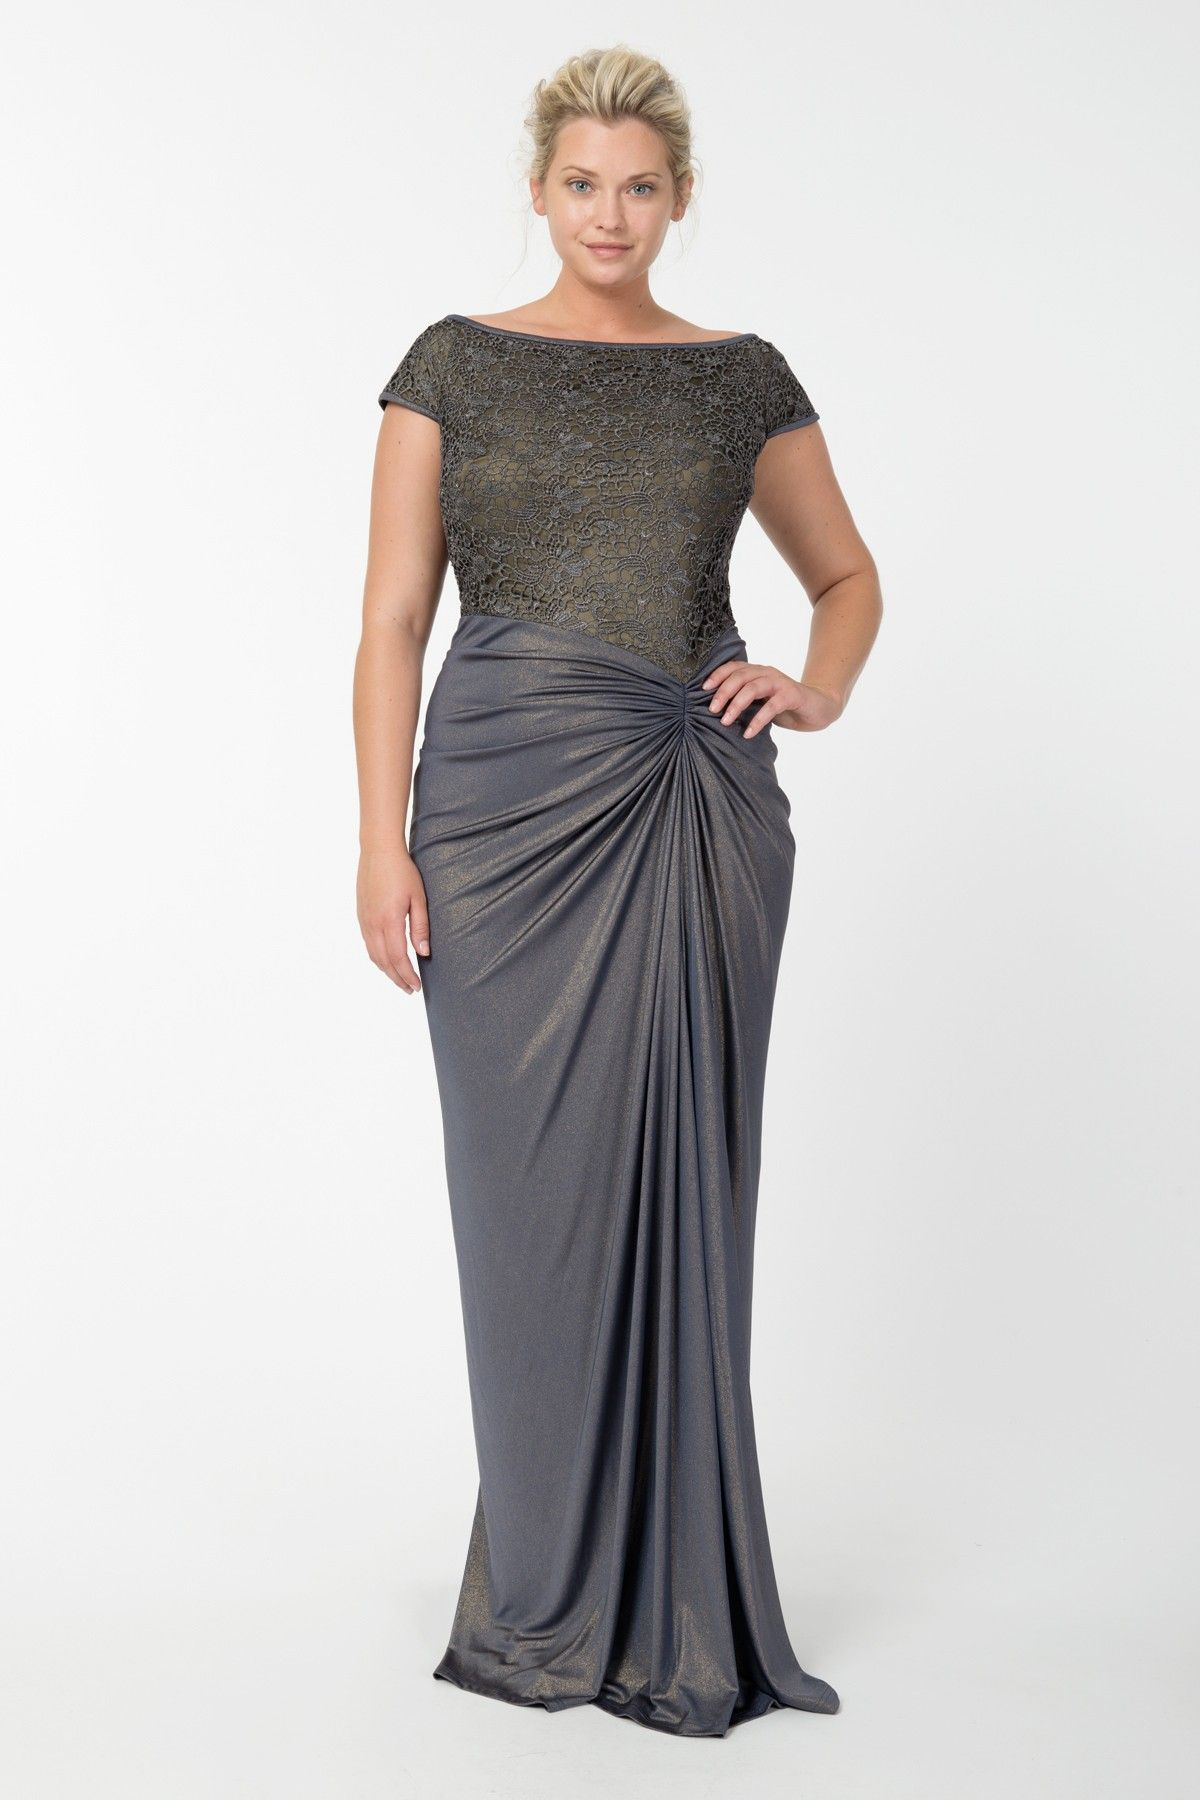 800845ac82e 20 Plus Size Evening Dresses to Look Like Queen